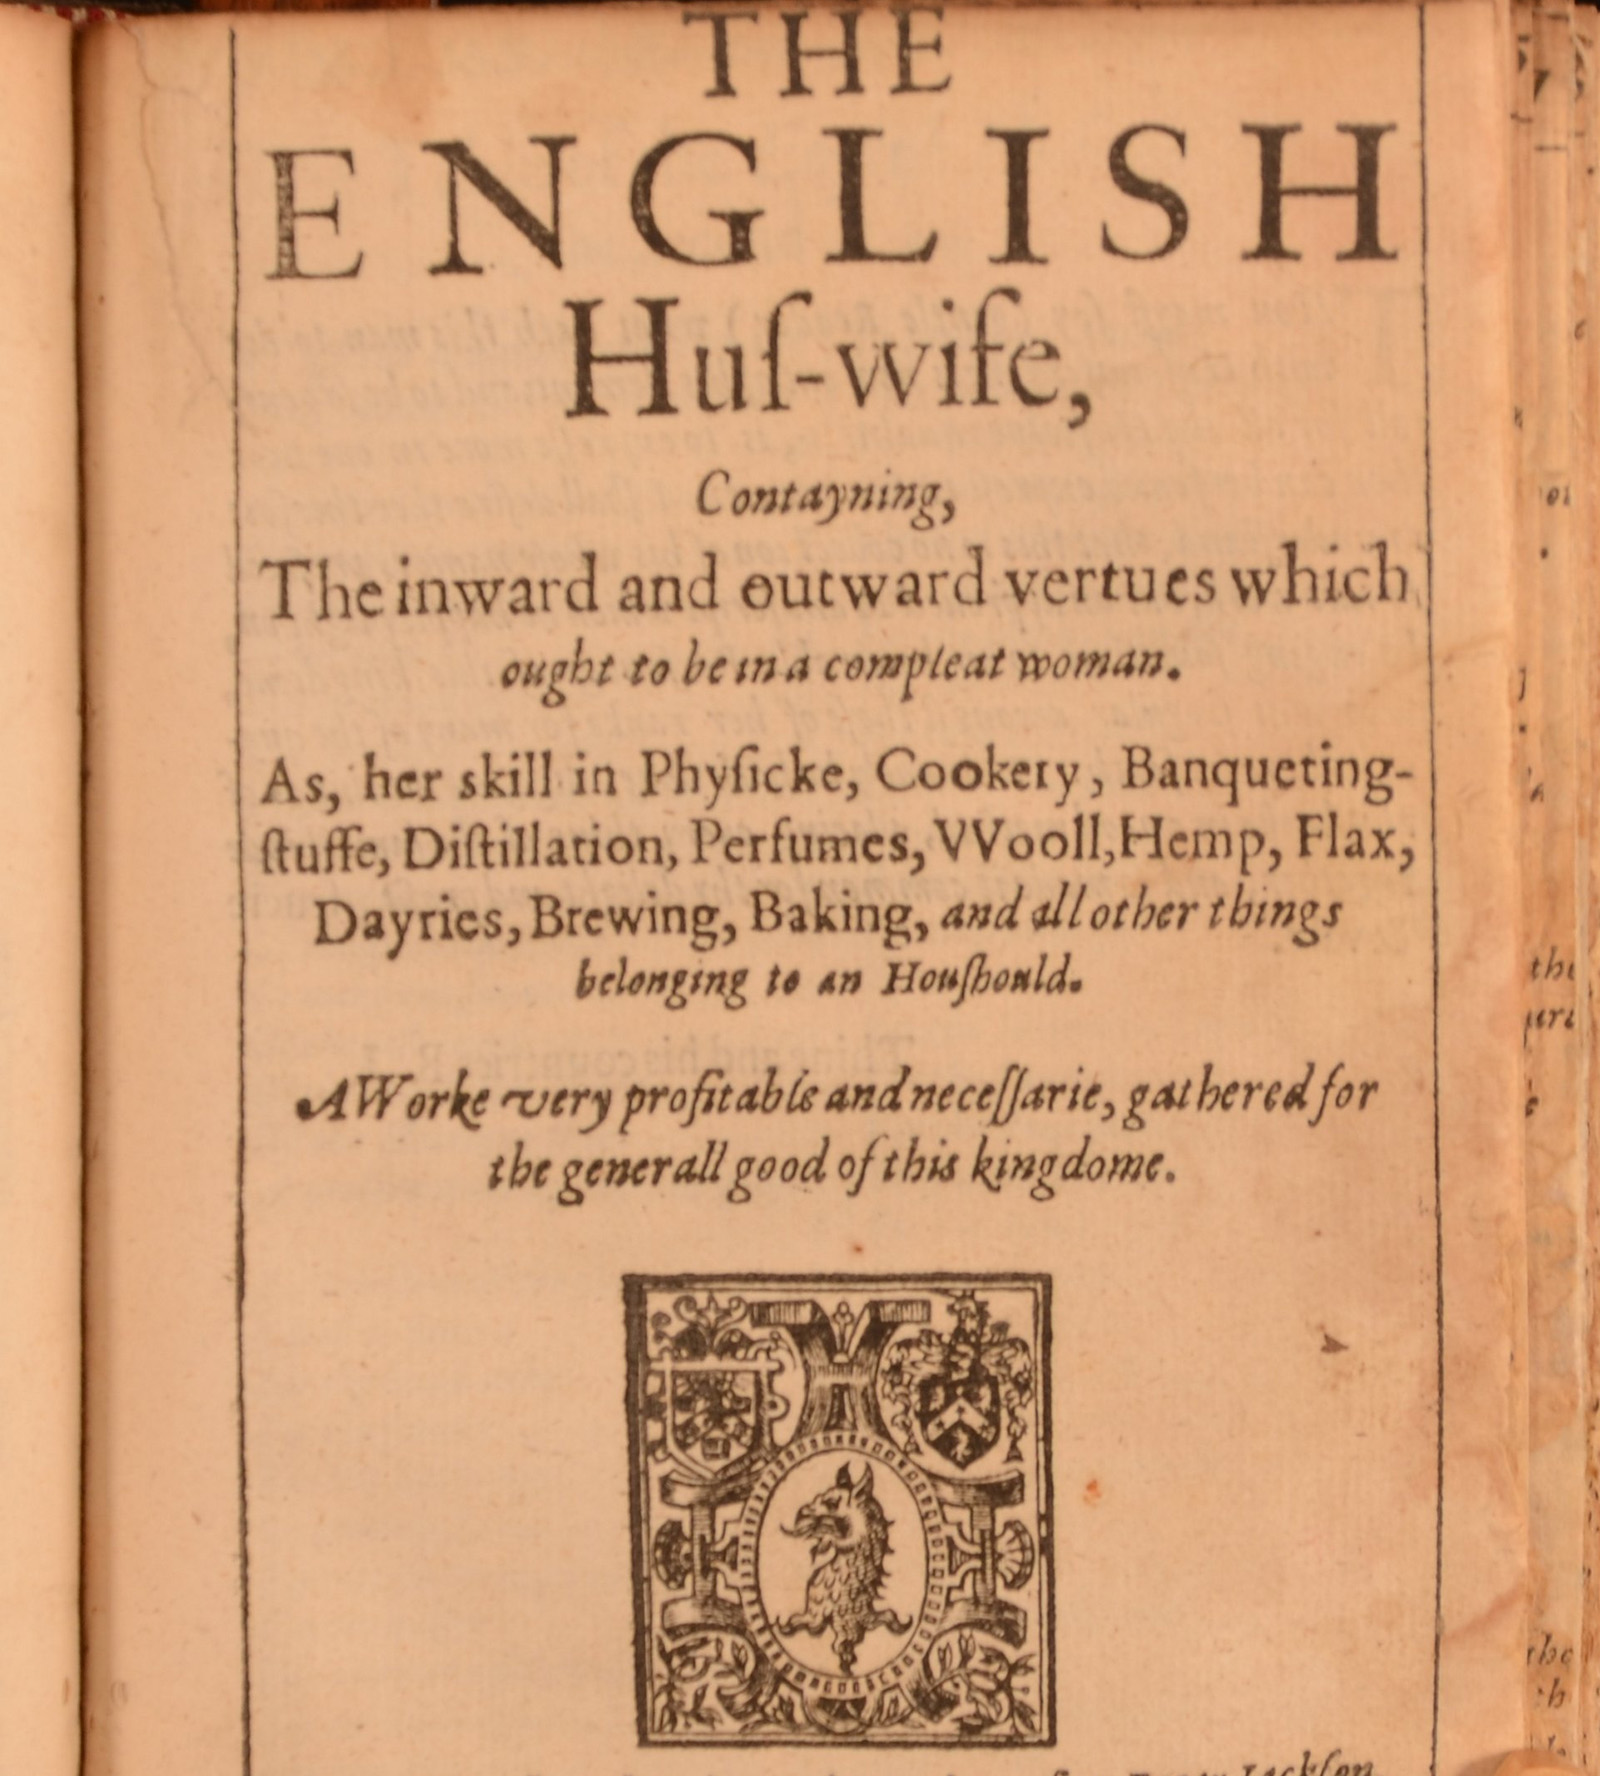 Title page of a pamphlet called The English Housewife